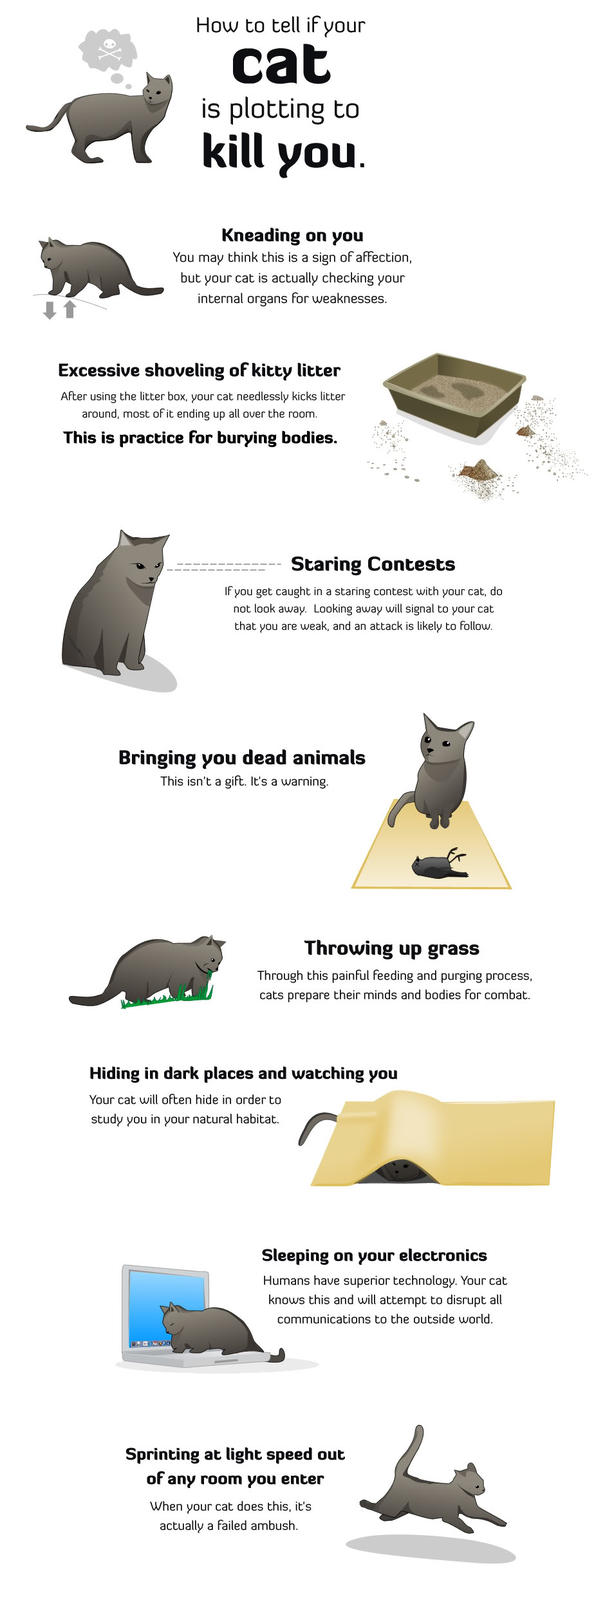 How to Tell if Your Cat Is Trying to Kill You.